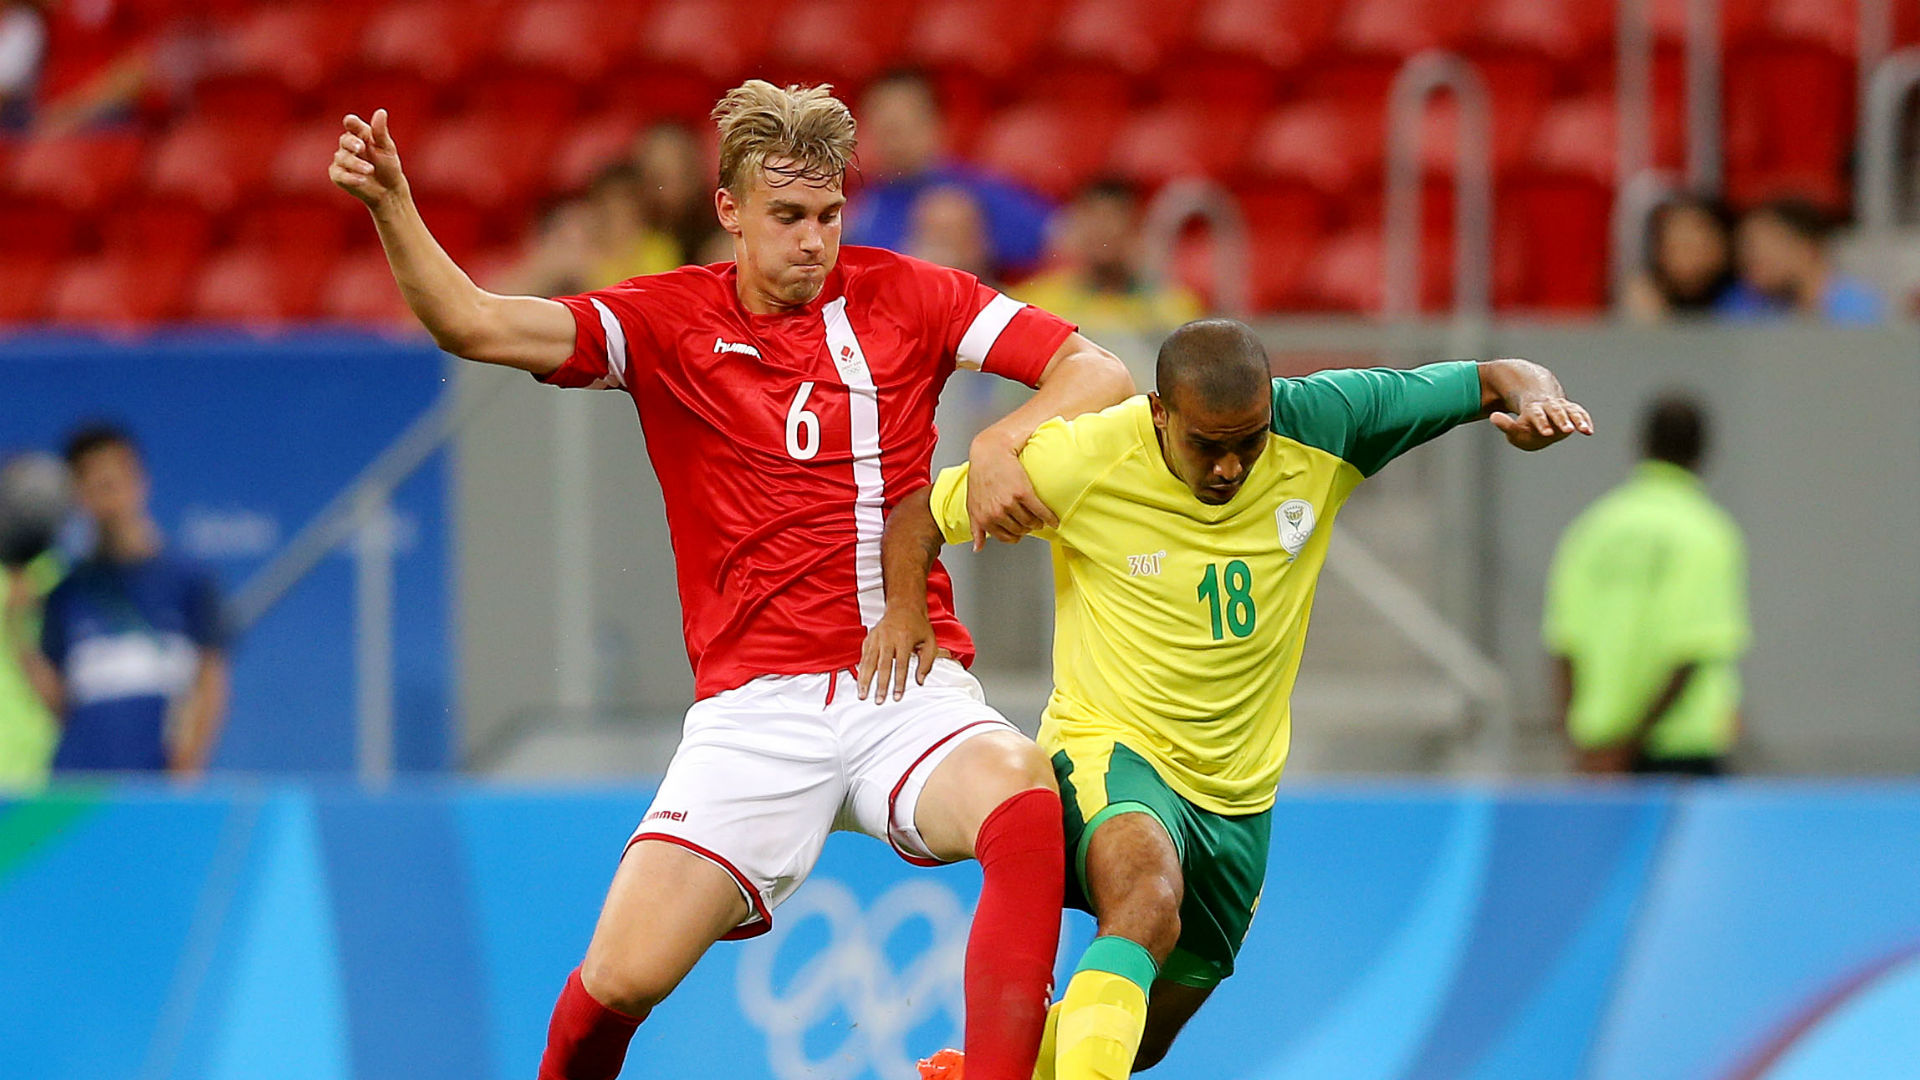 Denmark gets by South Africa 1-0